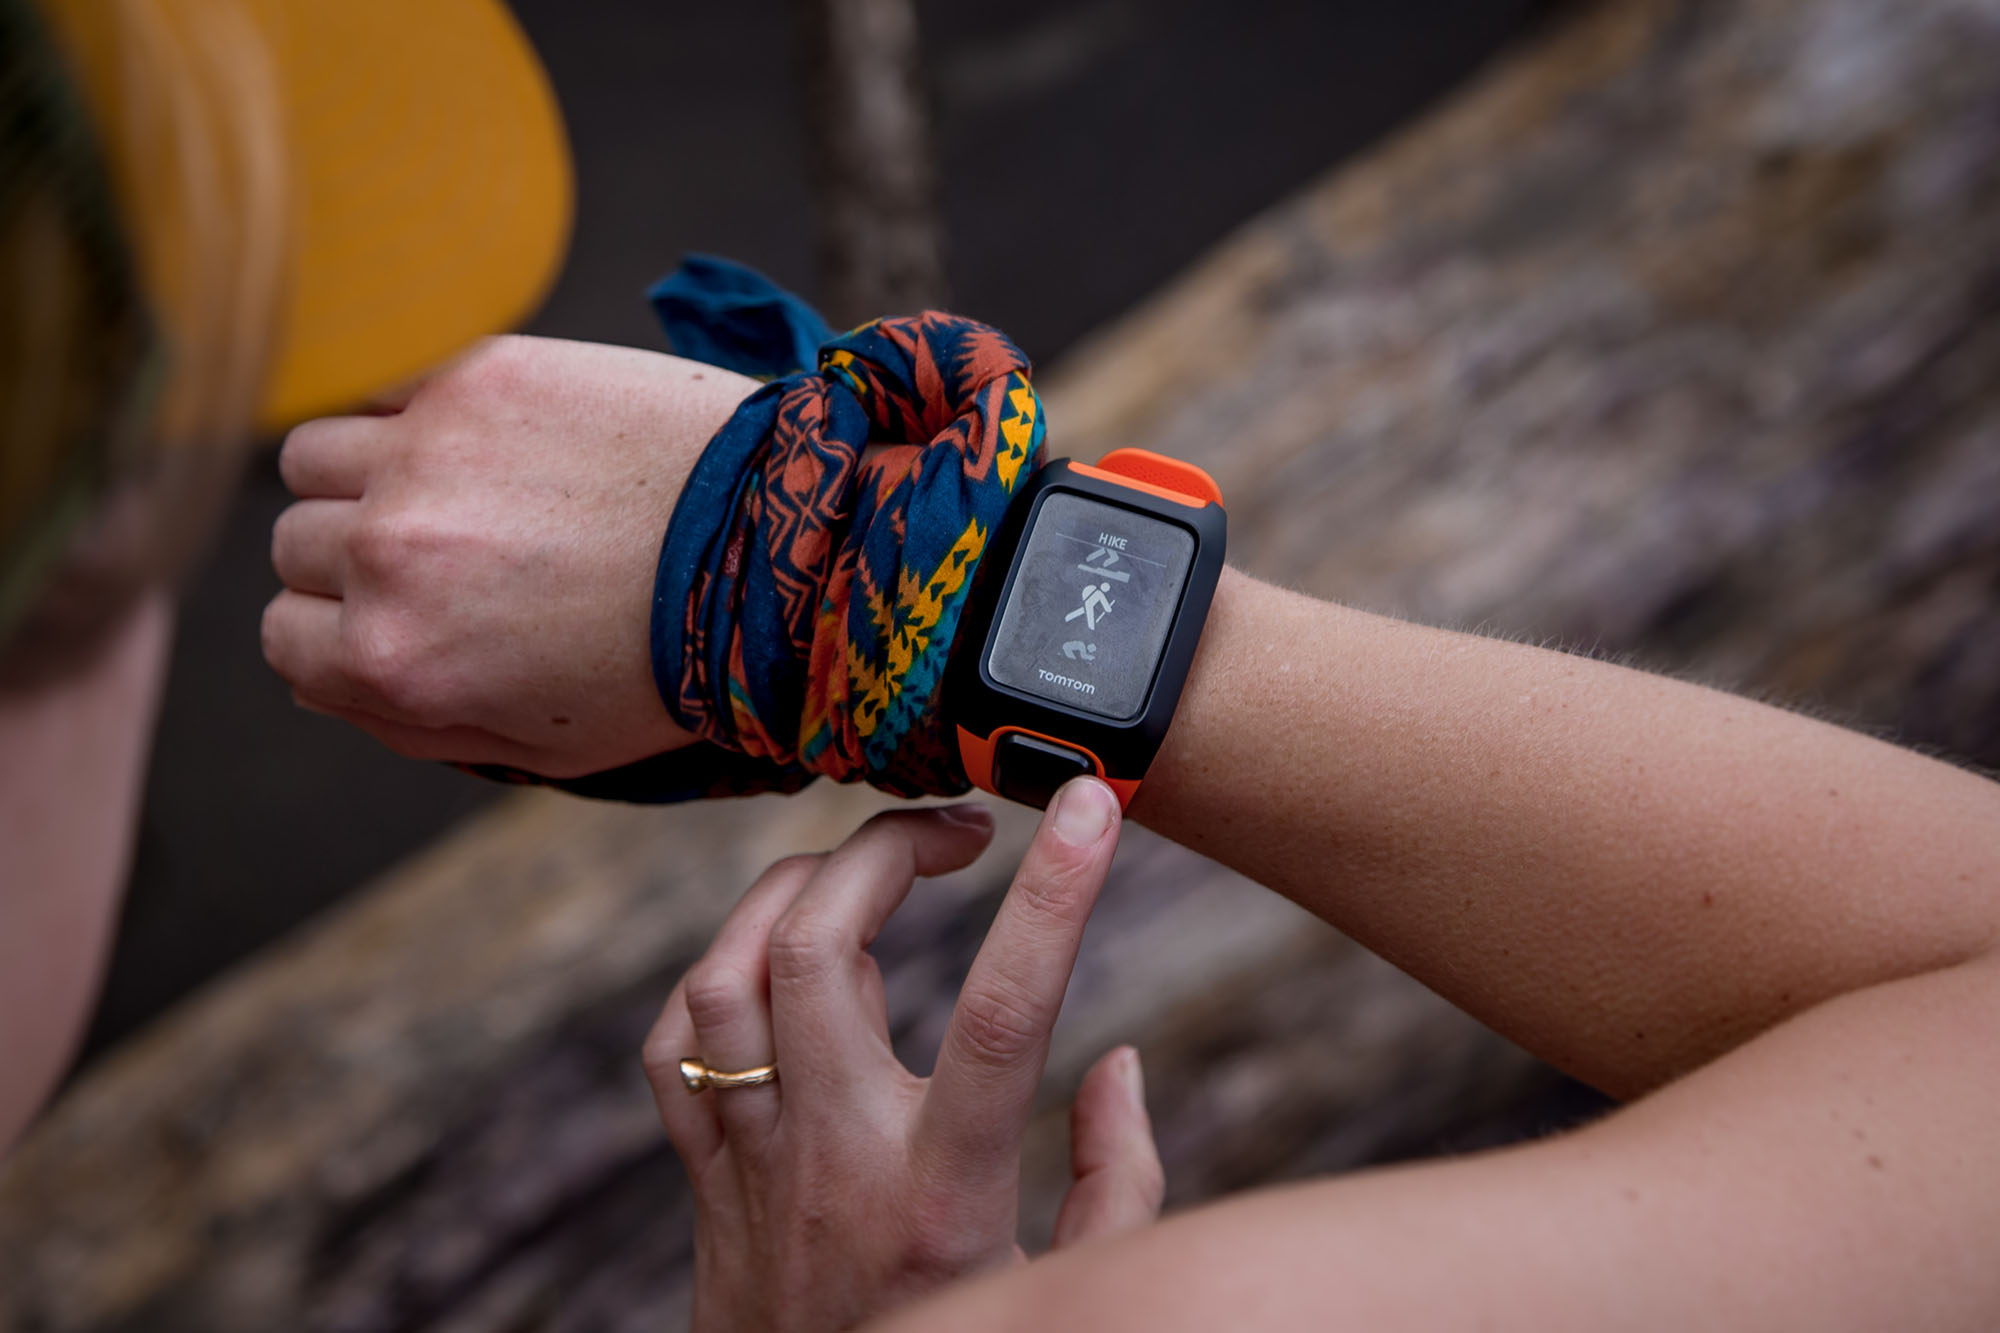 www.boulderingonline.pl Rock climbing and bouldering pictures and news TomTom Adventurer Watch